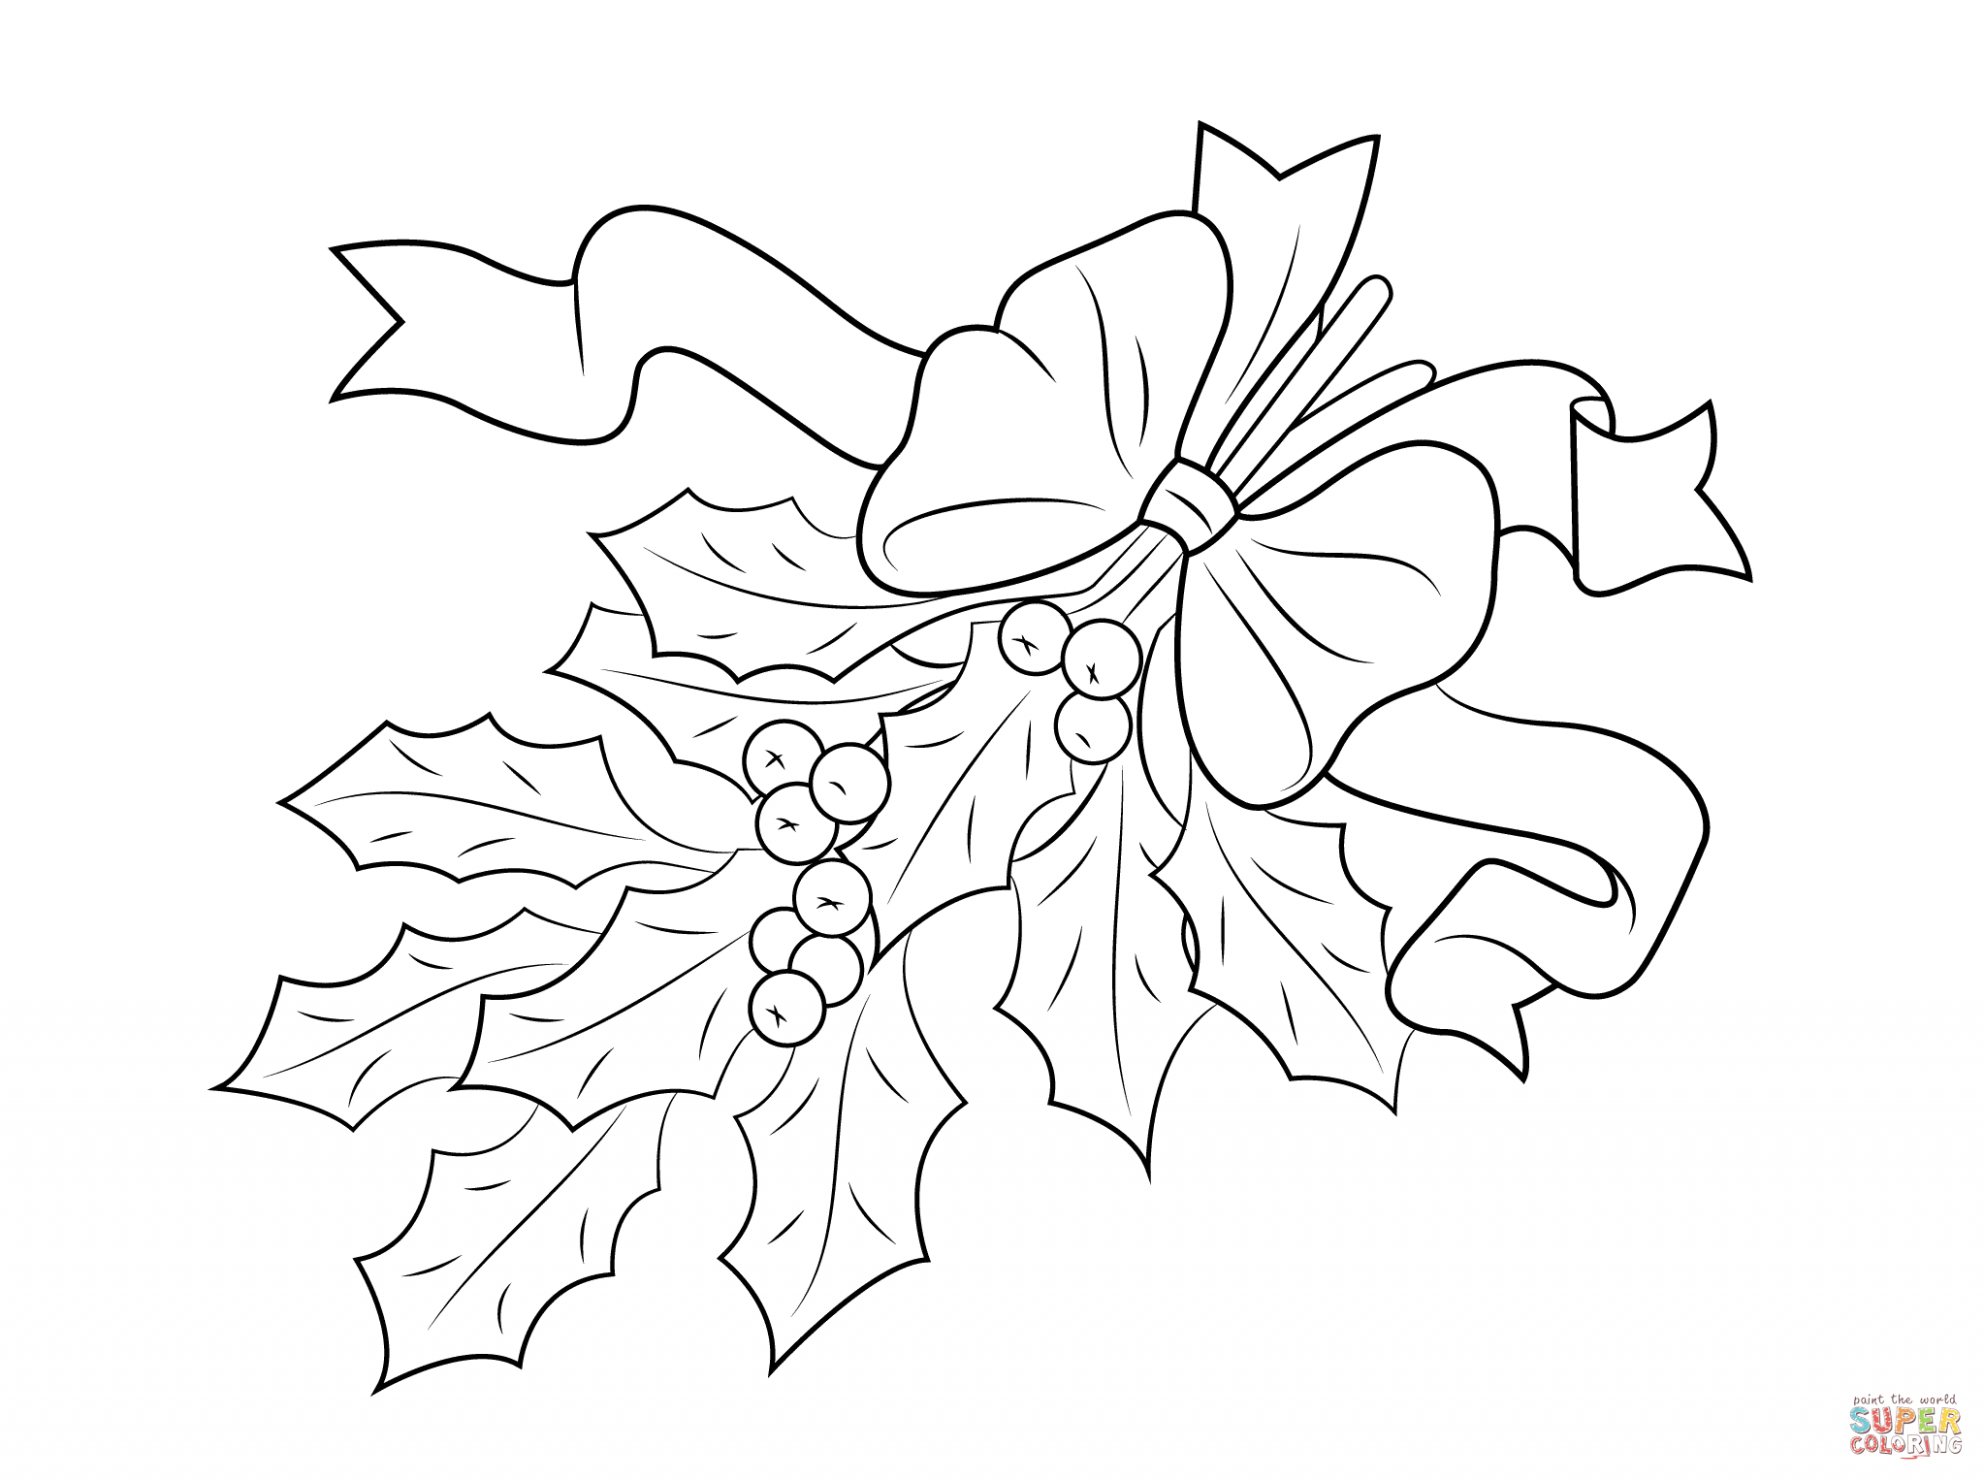 Christmas Holly With Bow Coloring Page | Free Printable Coloring ..